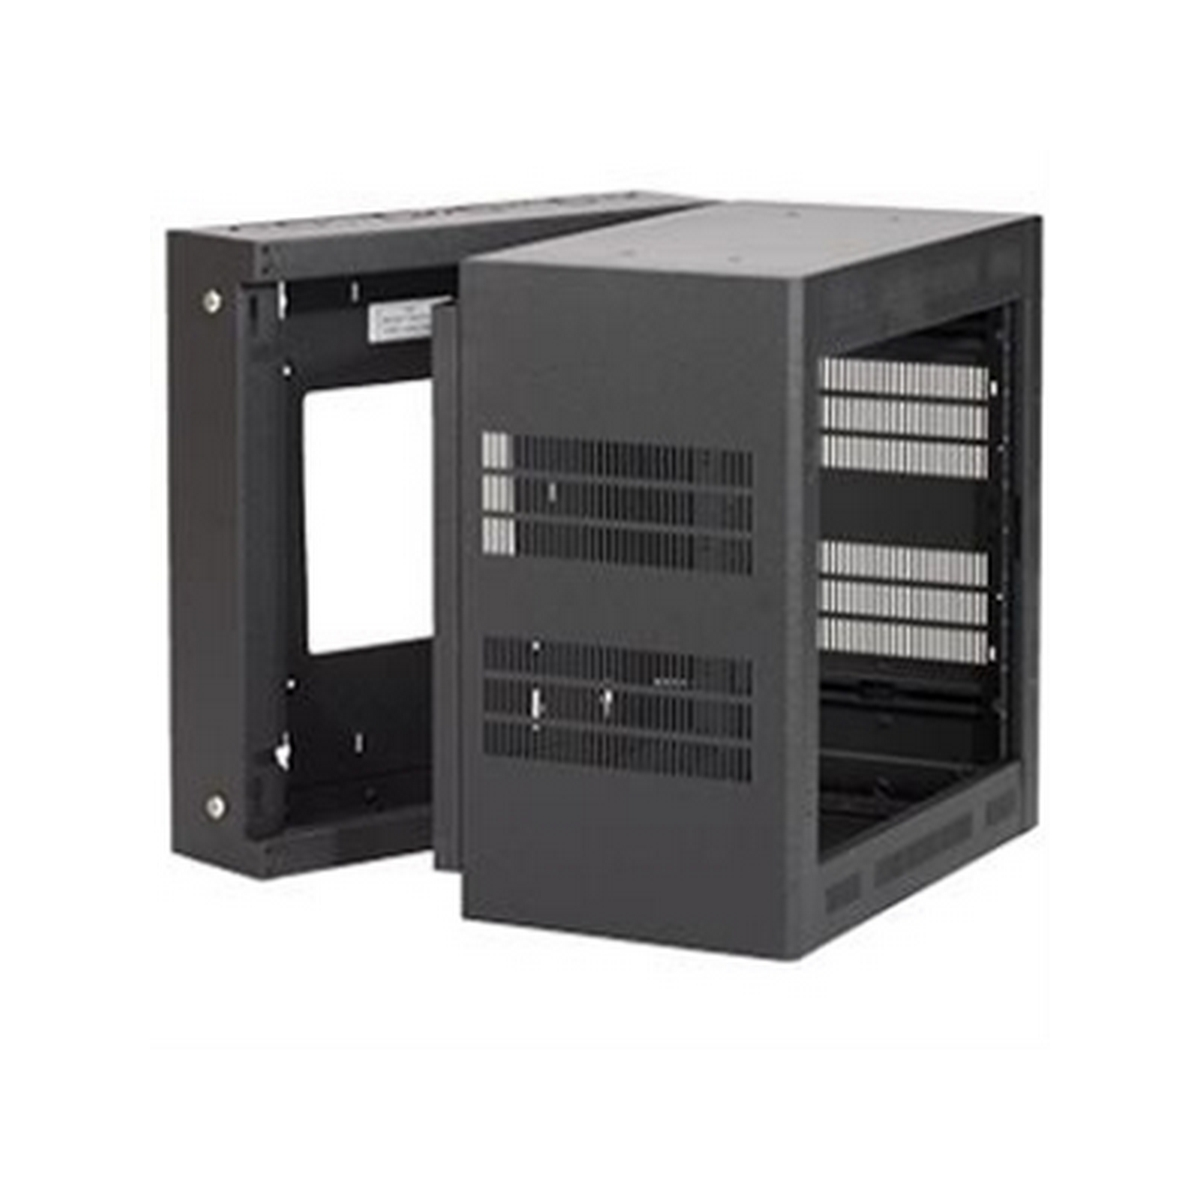 Lowell Rack Sectional Wall Mount-12U,28